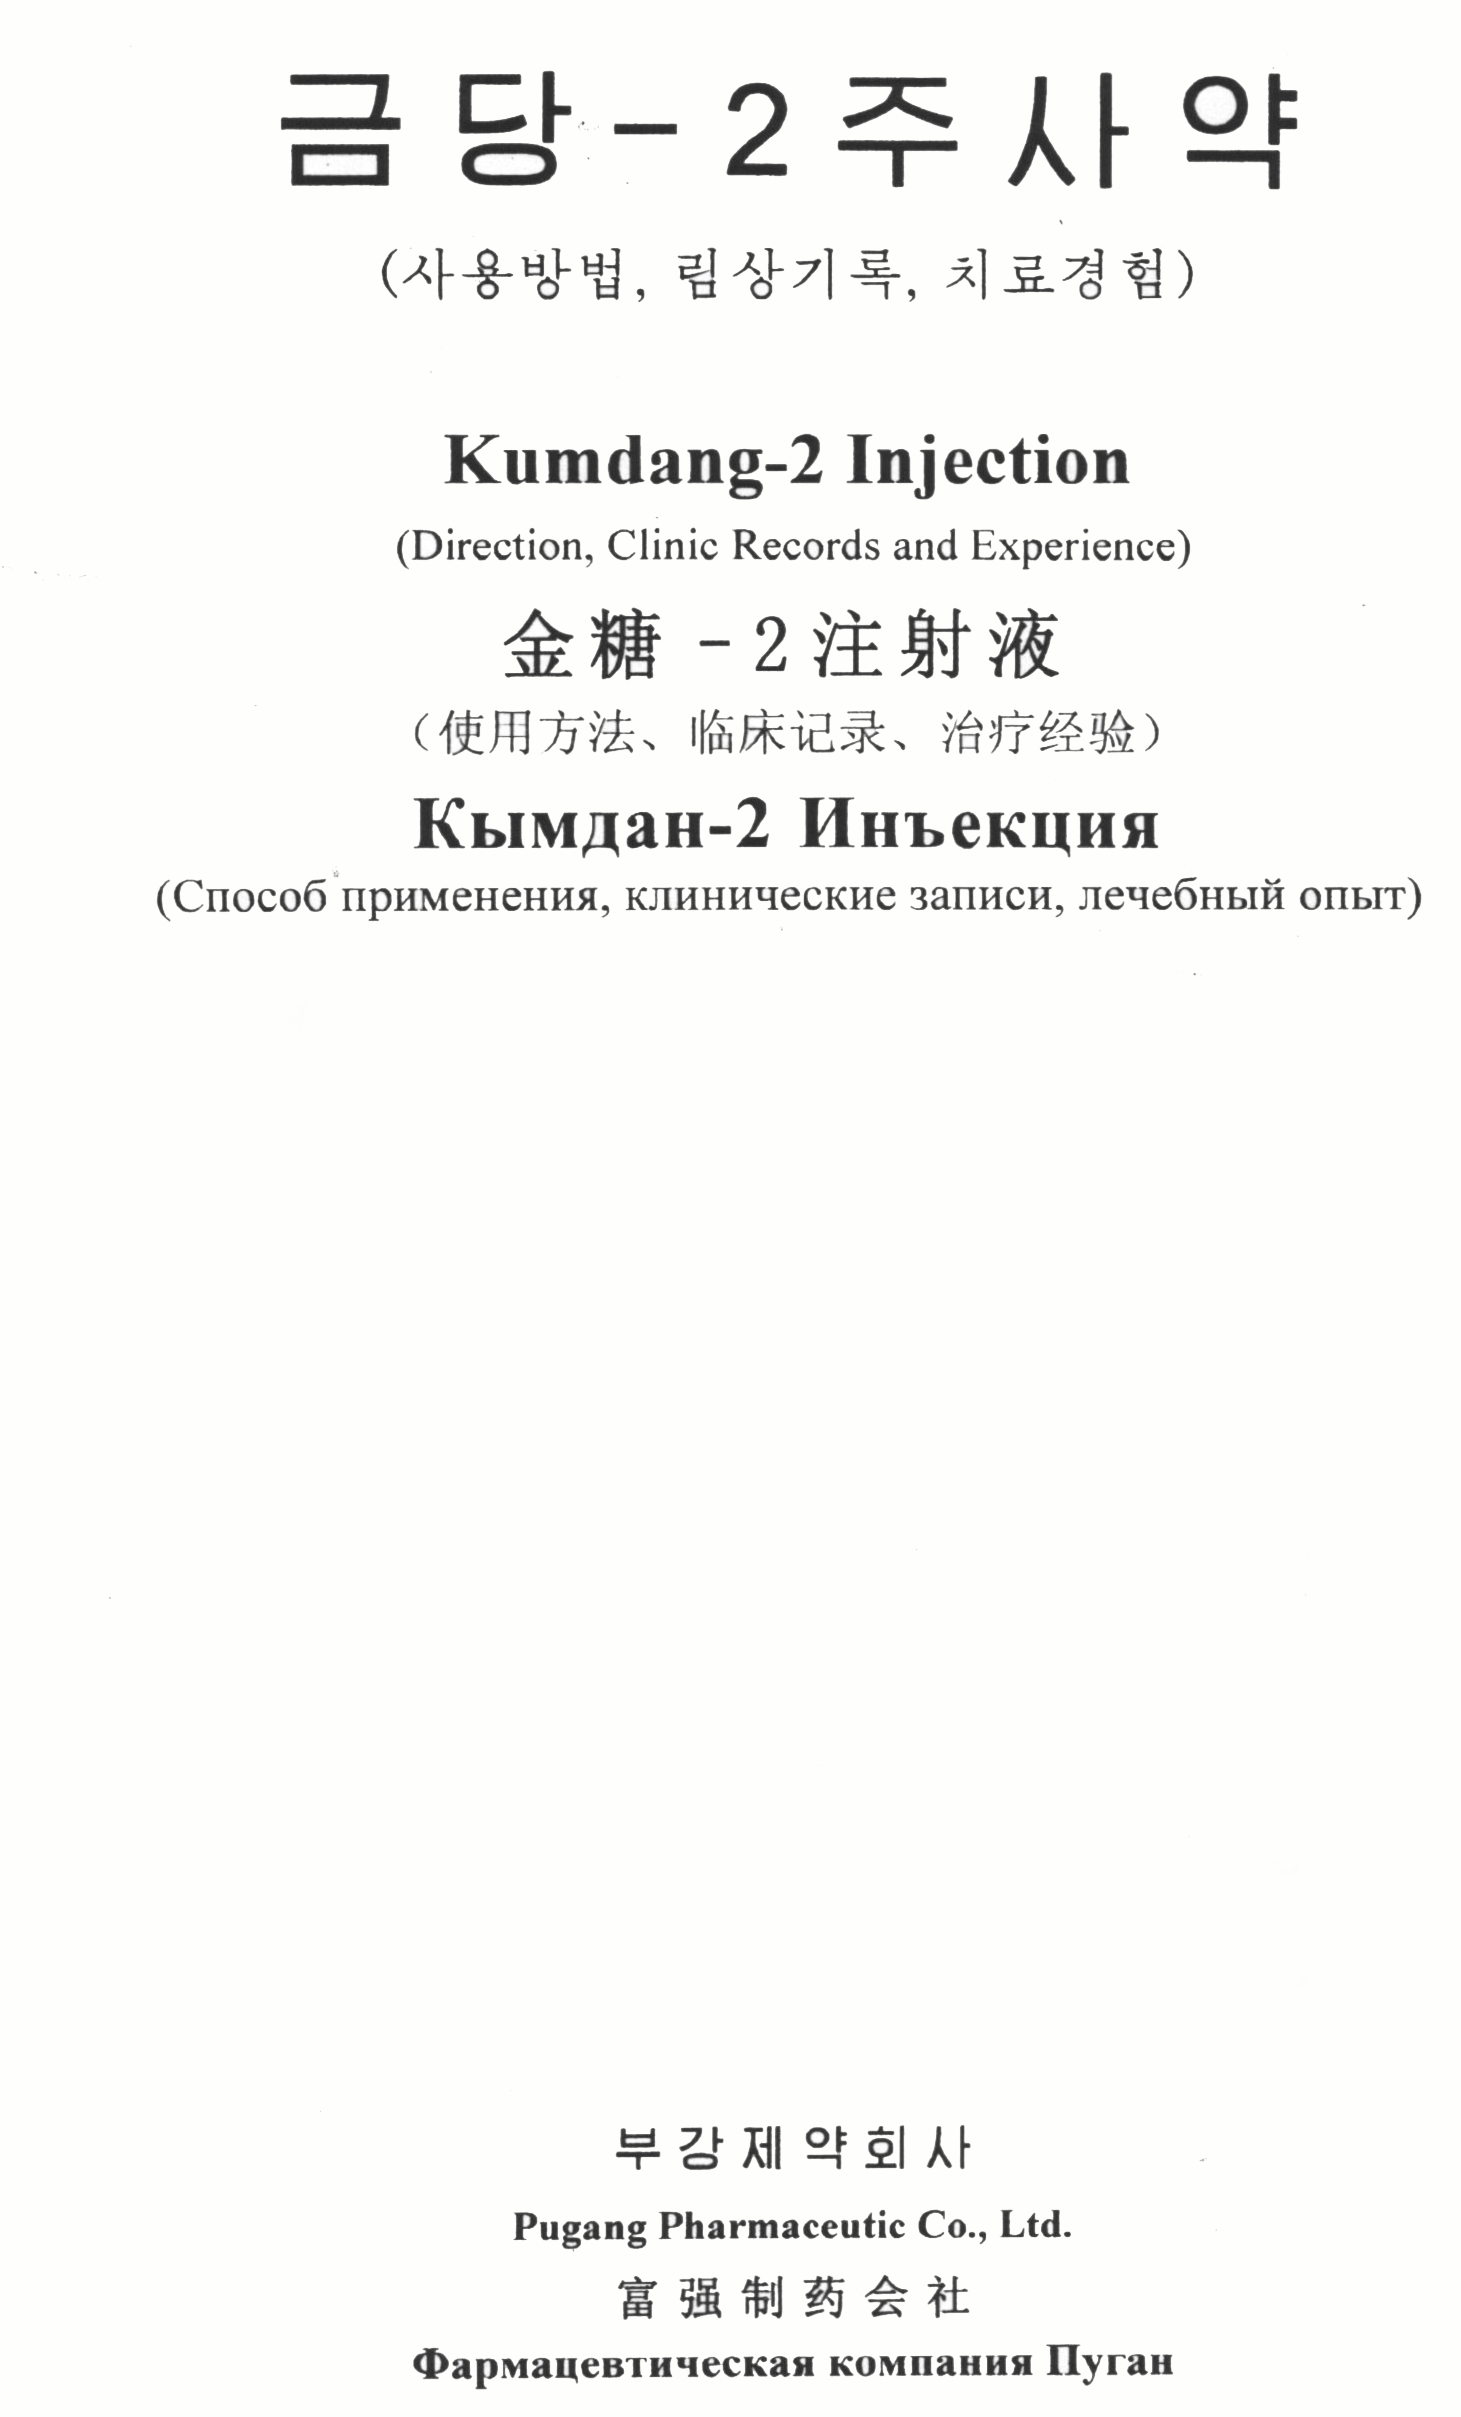 Kumdan-2 injections treatment of diseases of cancer, AIDS, Hypatia.